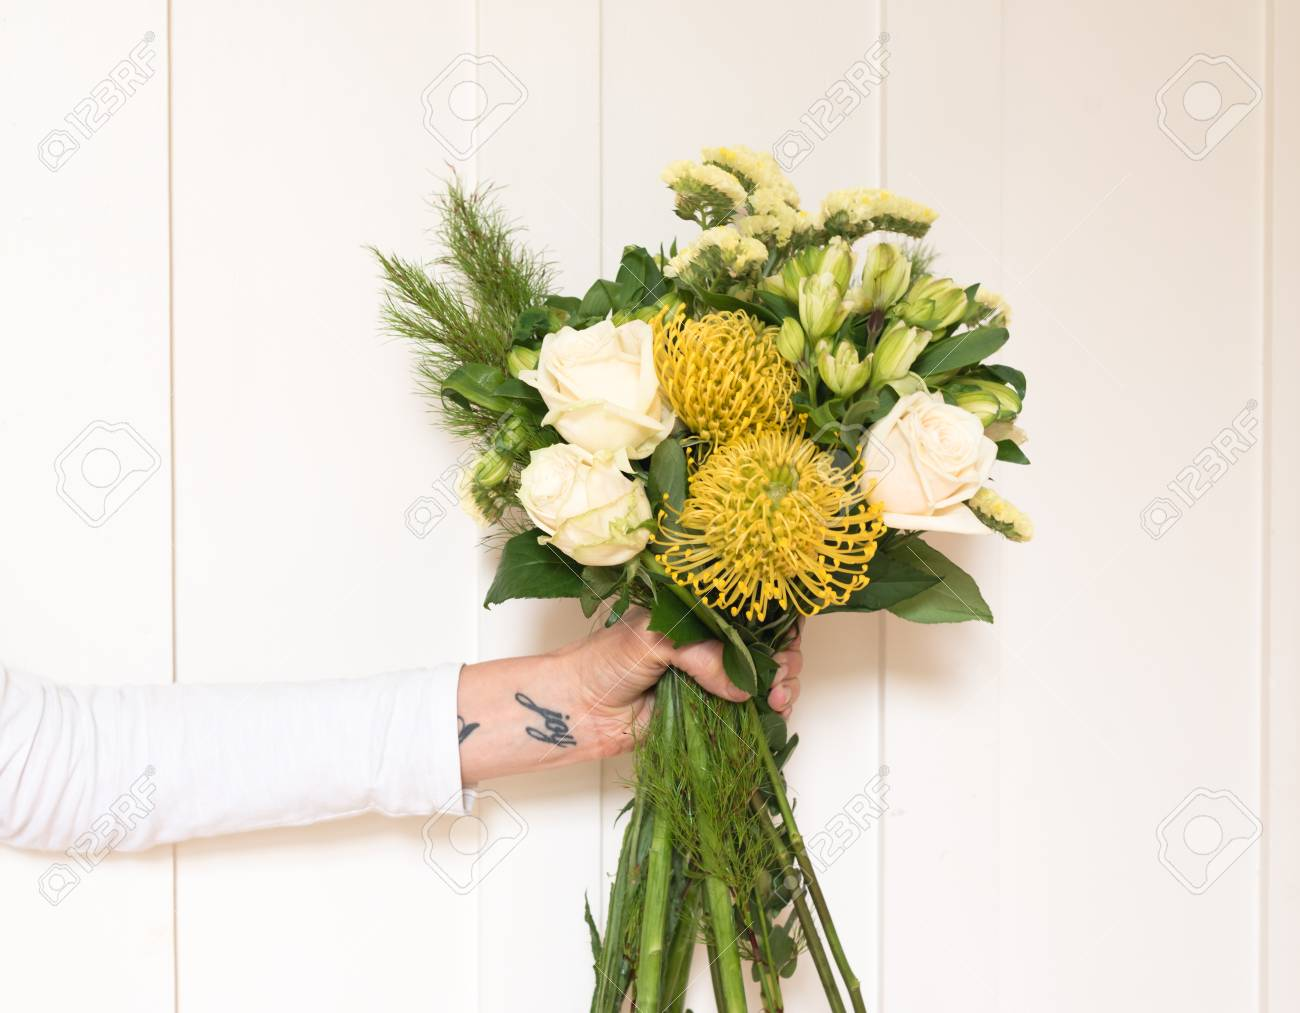 Womans Arm Holding Bouquet Of Cream And Yellow Flowers Against